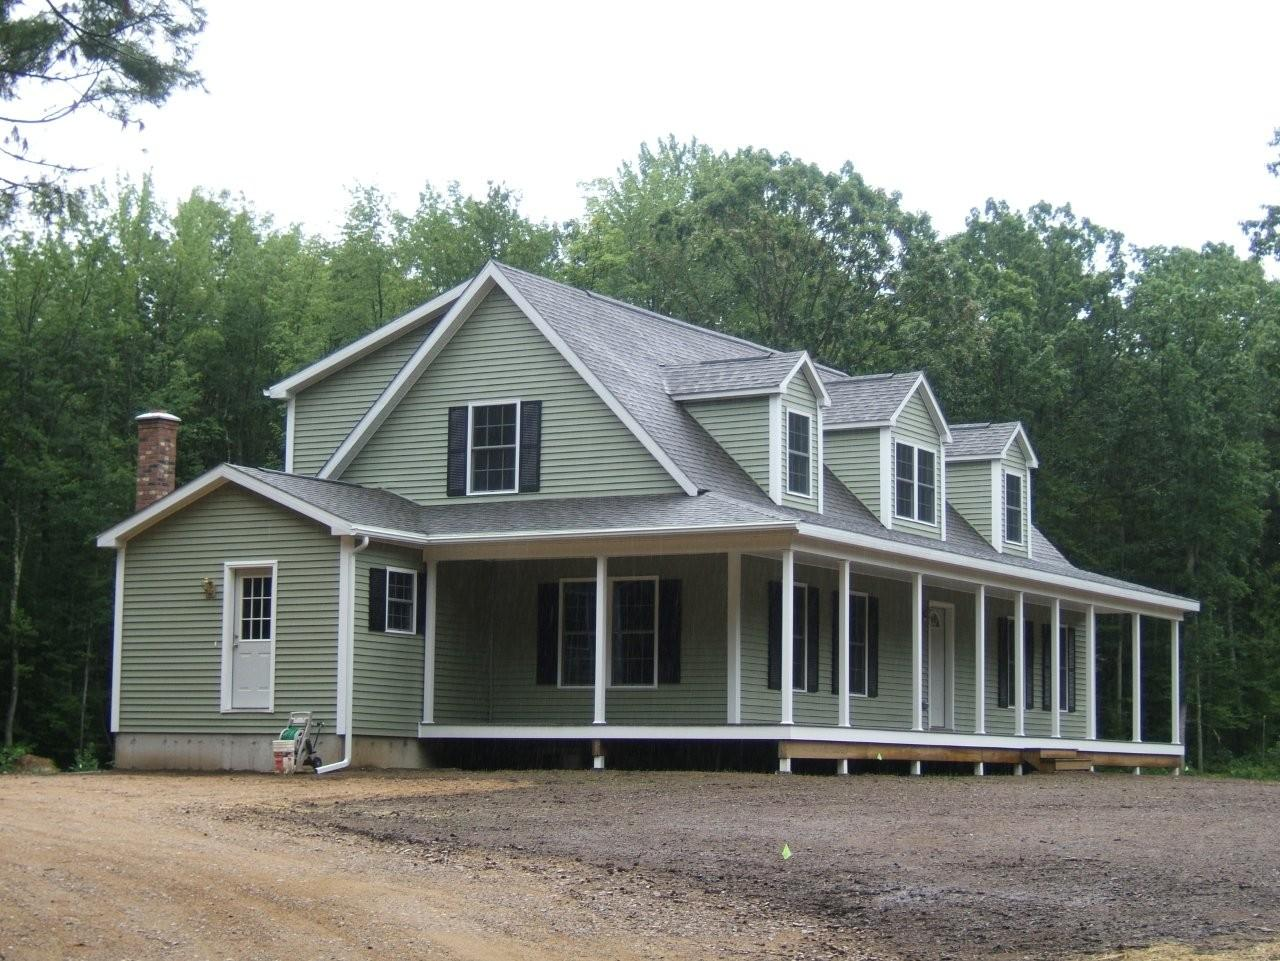 Energy efficient 2-story modular home